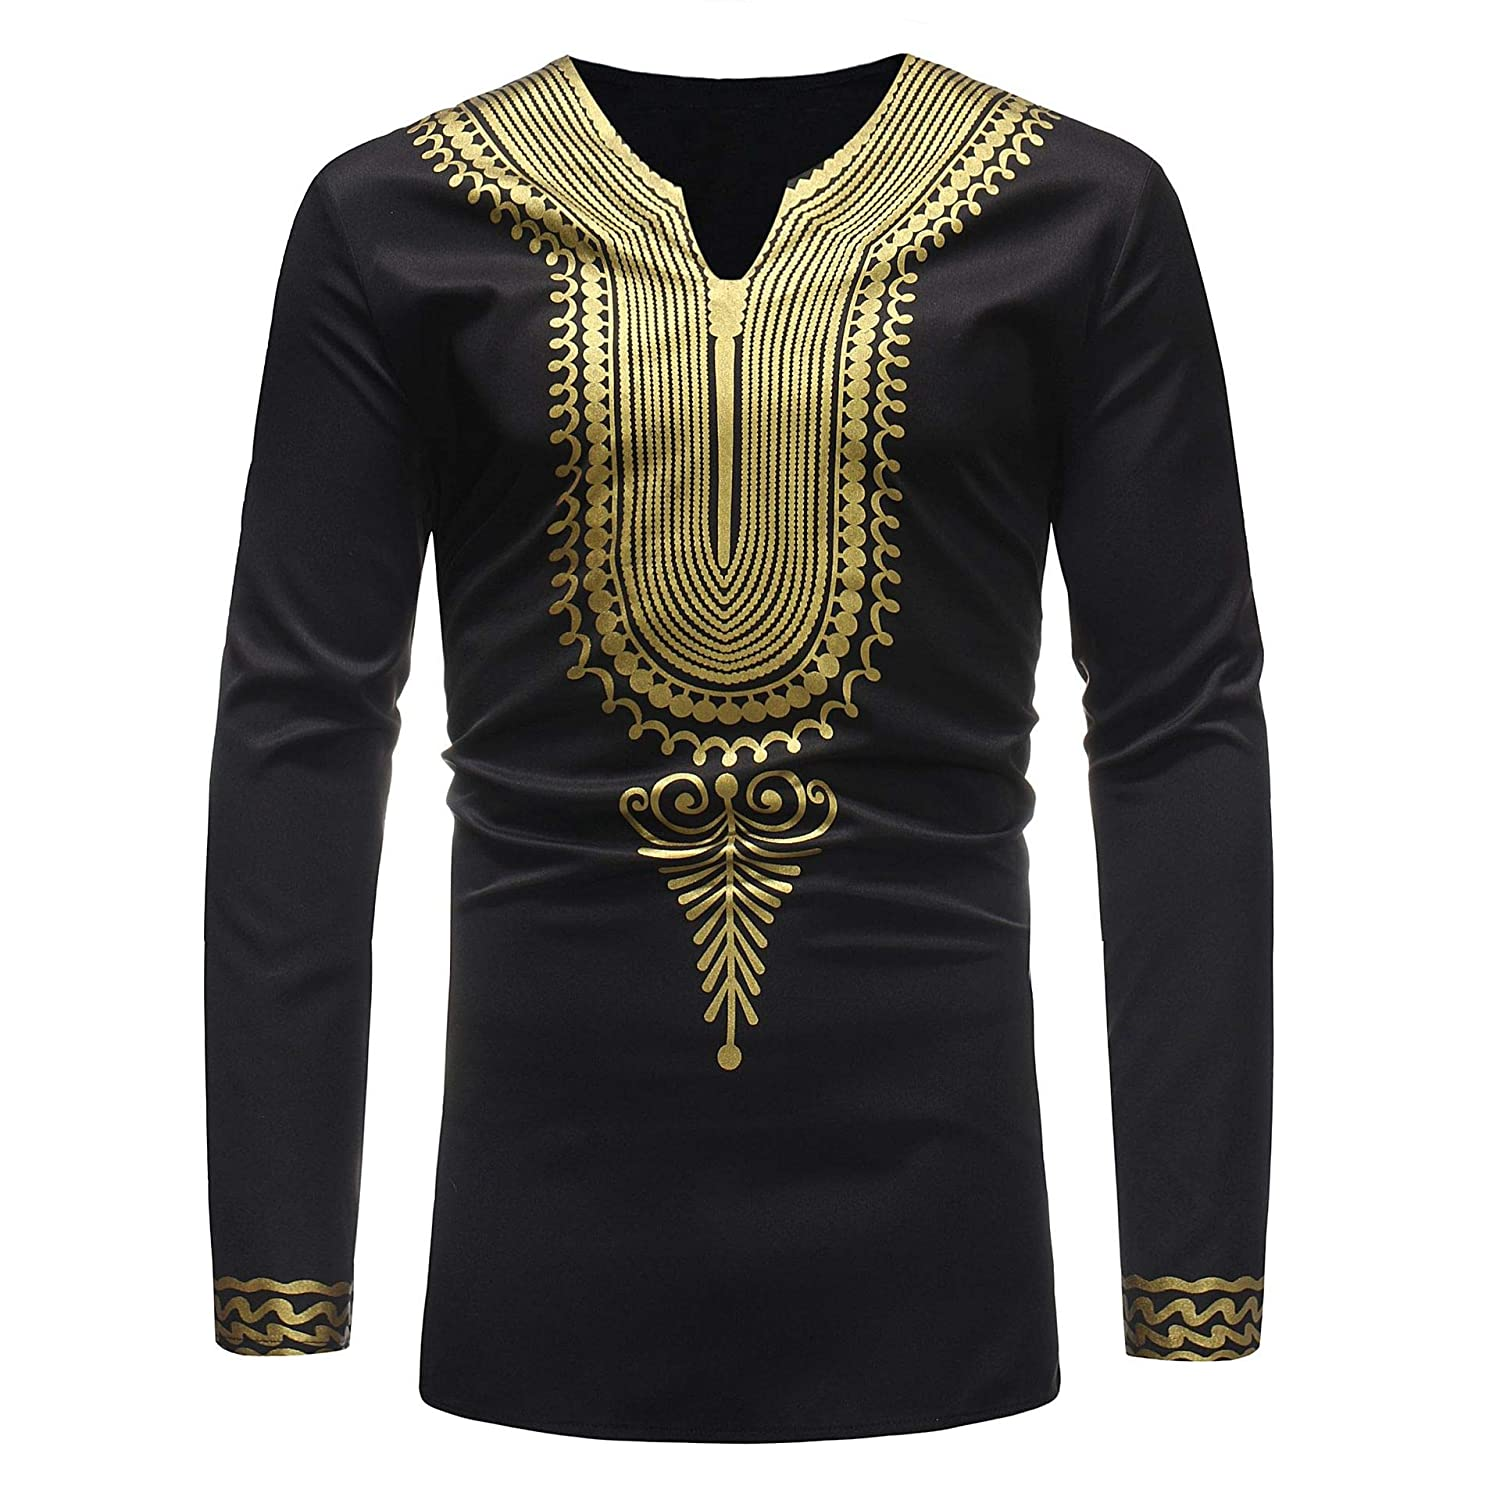 1643891a319 Top 10 wholesale Plus Size African Dashiki Dress - Chinabrands.com